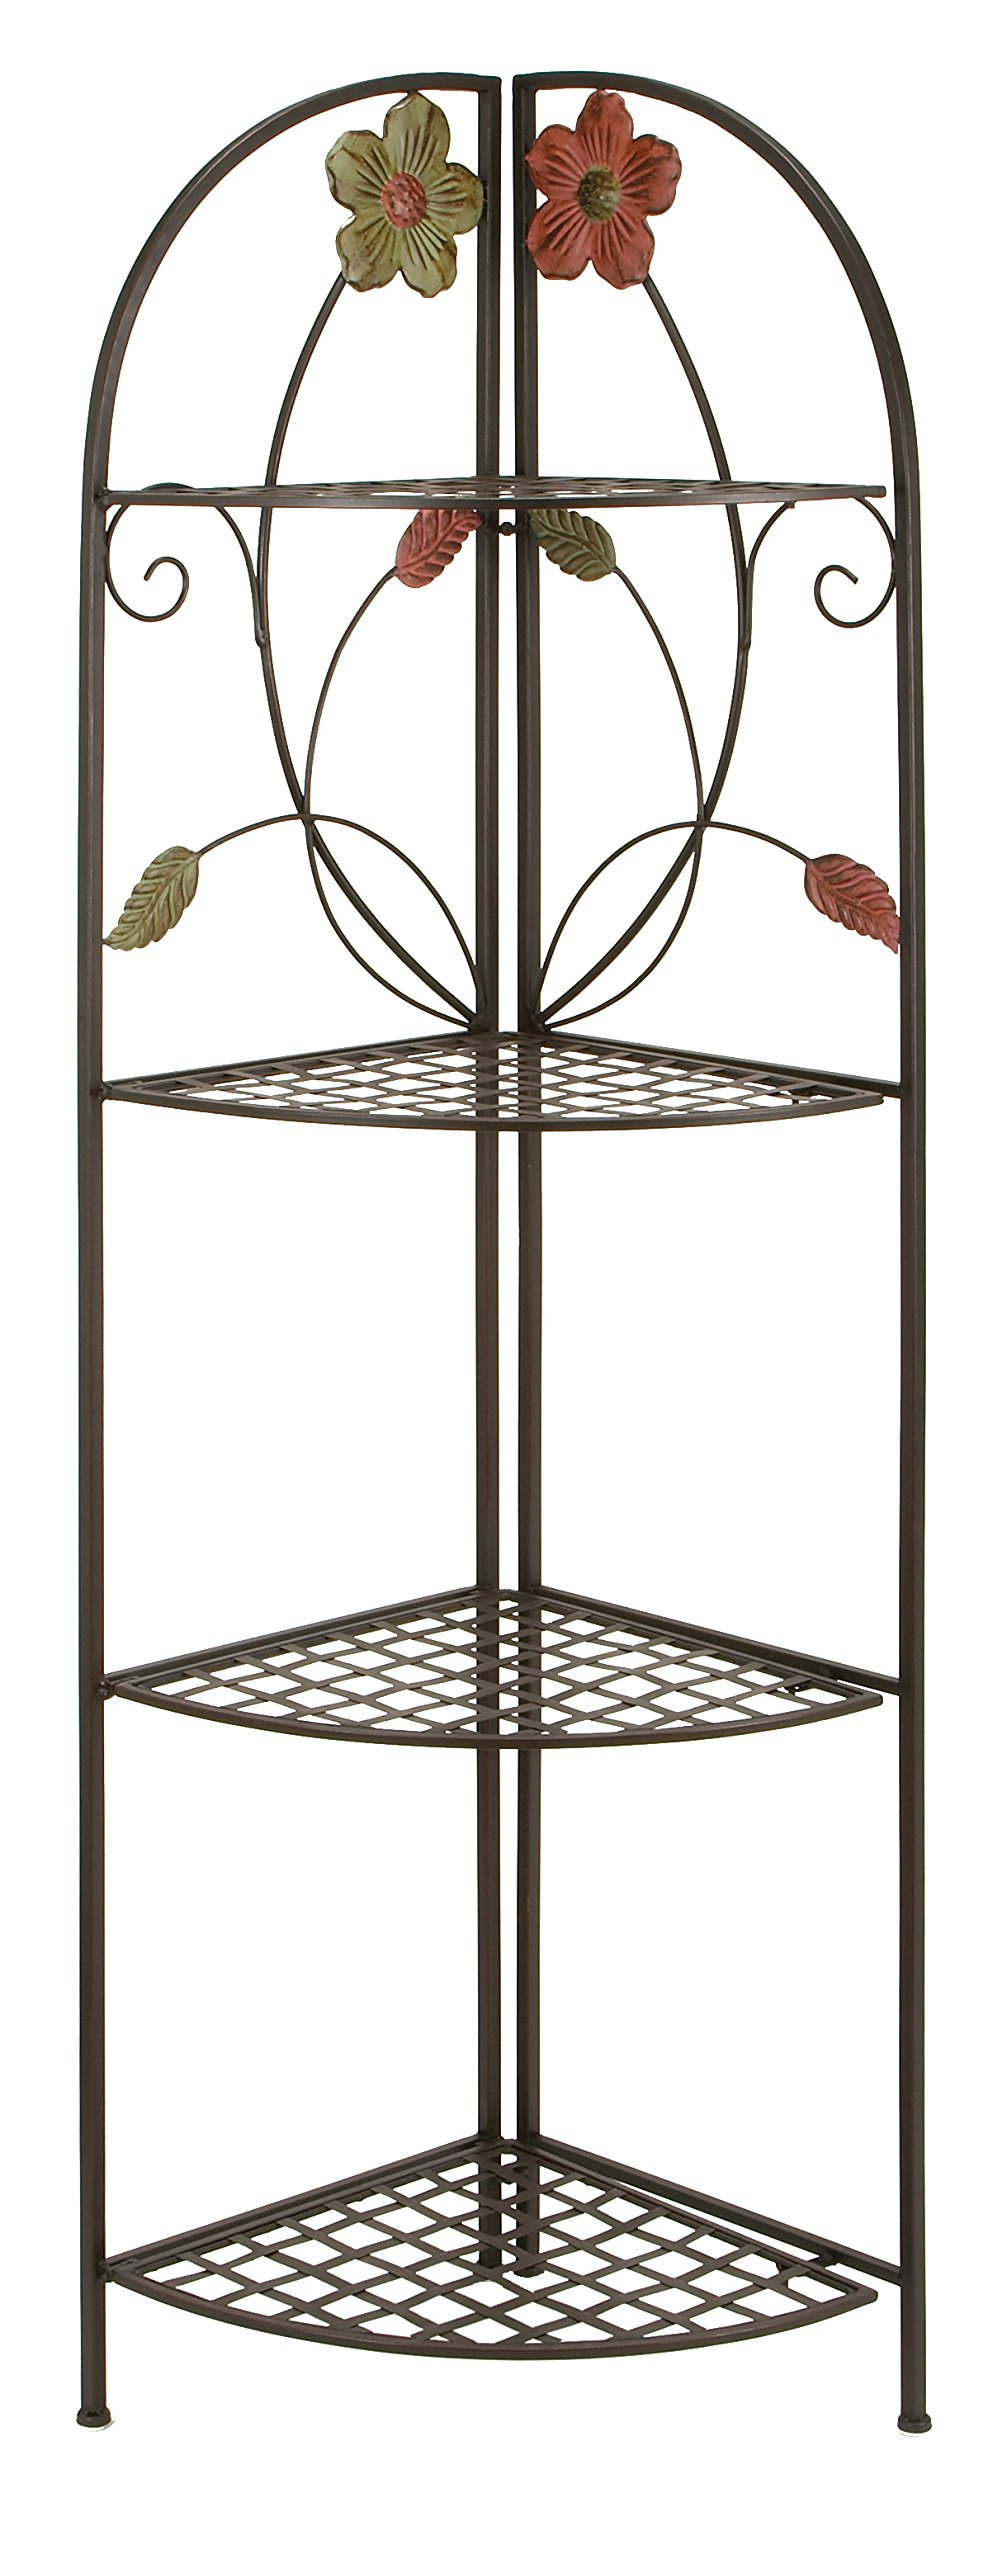 Deco 79 63066 Metal Corner Rack, 22 by 64-Inch by Deco 79